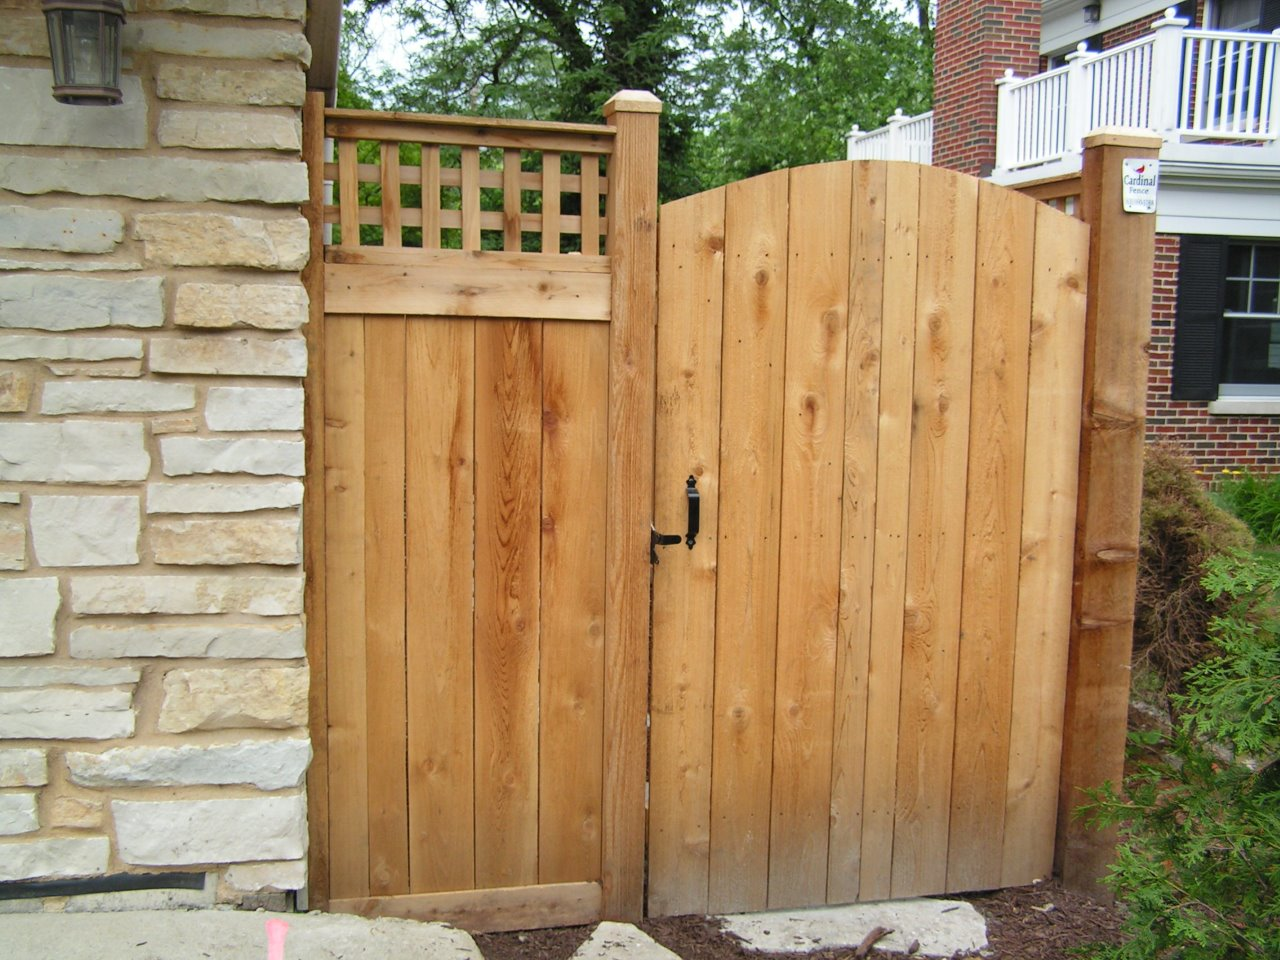 6u0027 Traditional with Square Lattice Arched Gate - Outside View Cedar Fence - Cardinal Fence u0026 Supply Inc. & 6u0027 Traditional with Square Lattice Arched Gate - Outside View Cedar ...